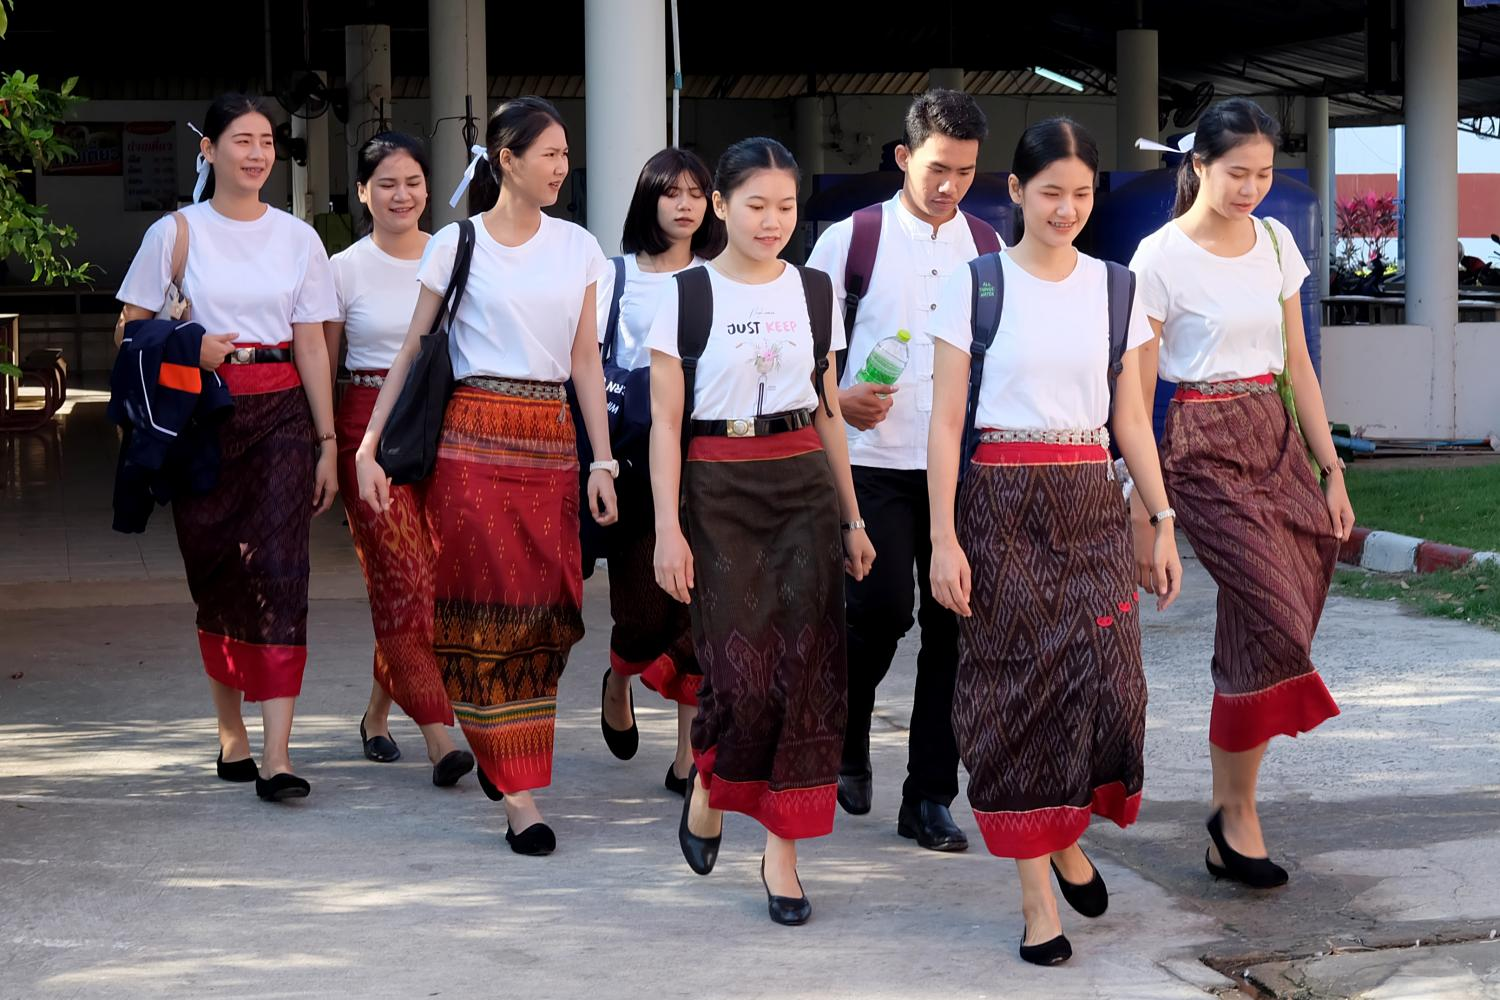 University students are seen wearing 'phasin' as they walk to their classes. Many students have taken to experimenting with phasin as a uniform, which is gaining popularity in universities in the lower Northeast. Phitsanu Thepthong